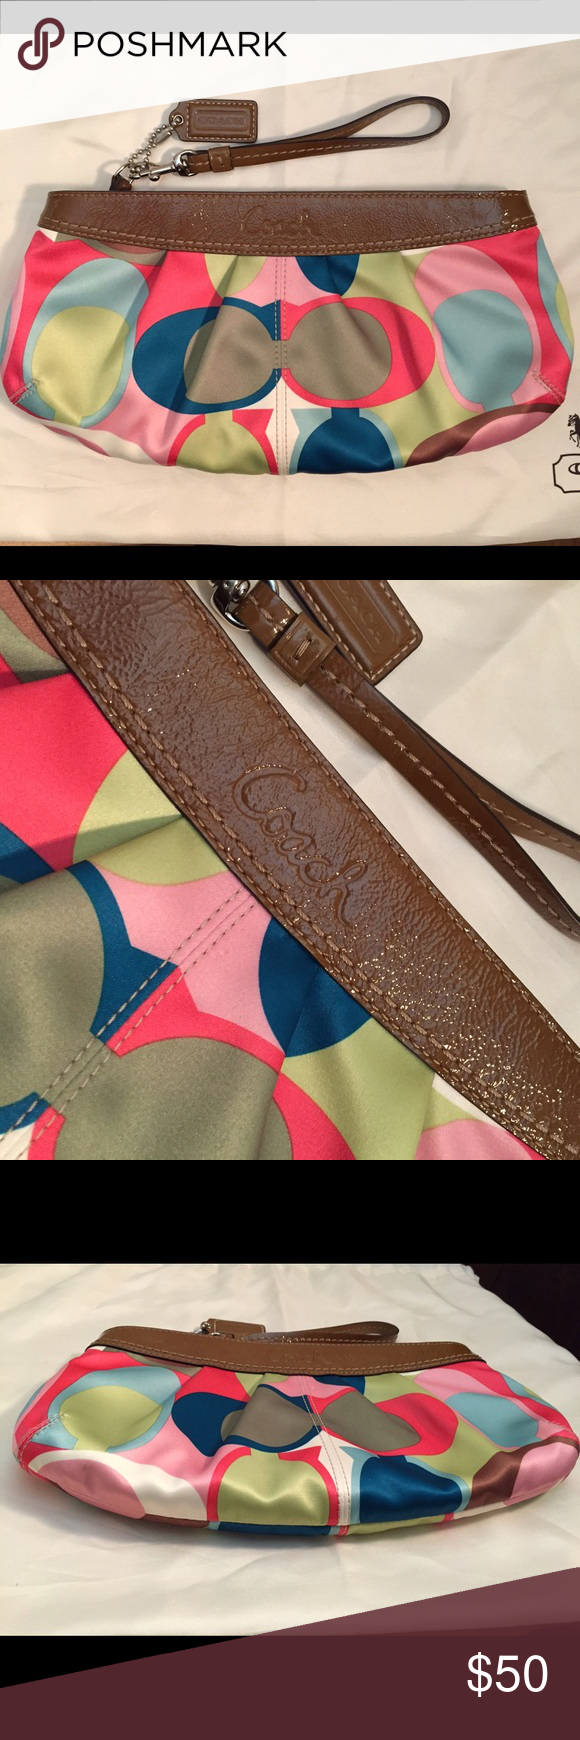 "Coach Soho Scarf Print Large Clutch/Wristlet Think spring with this bright and cheerful Coach clutch!  It has a removable wrist strap but provides much more room than your average wristlet.  The colorful Optic print is complimented by tan patent leather trim, and the inside has tan fabric with one zipper pocket and one small open pocket for accessories.  Used only once to go to a evening concert, this versatile bag is perfect for day or night!  The clutch is 12""W x 6""H x 1.75""D. Coach Bags…"